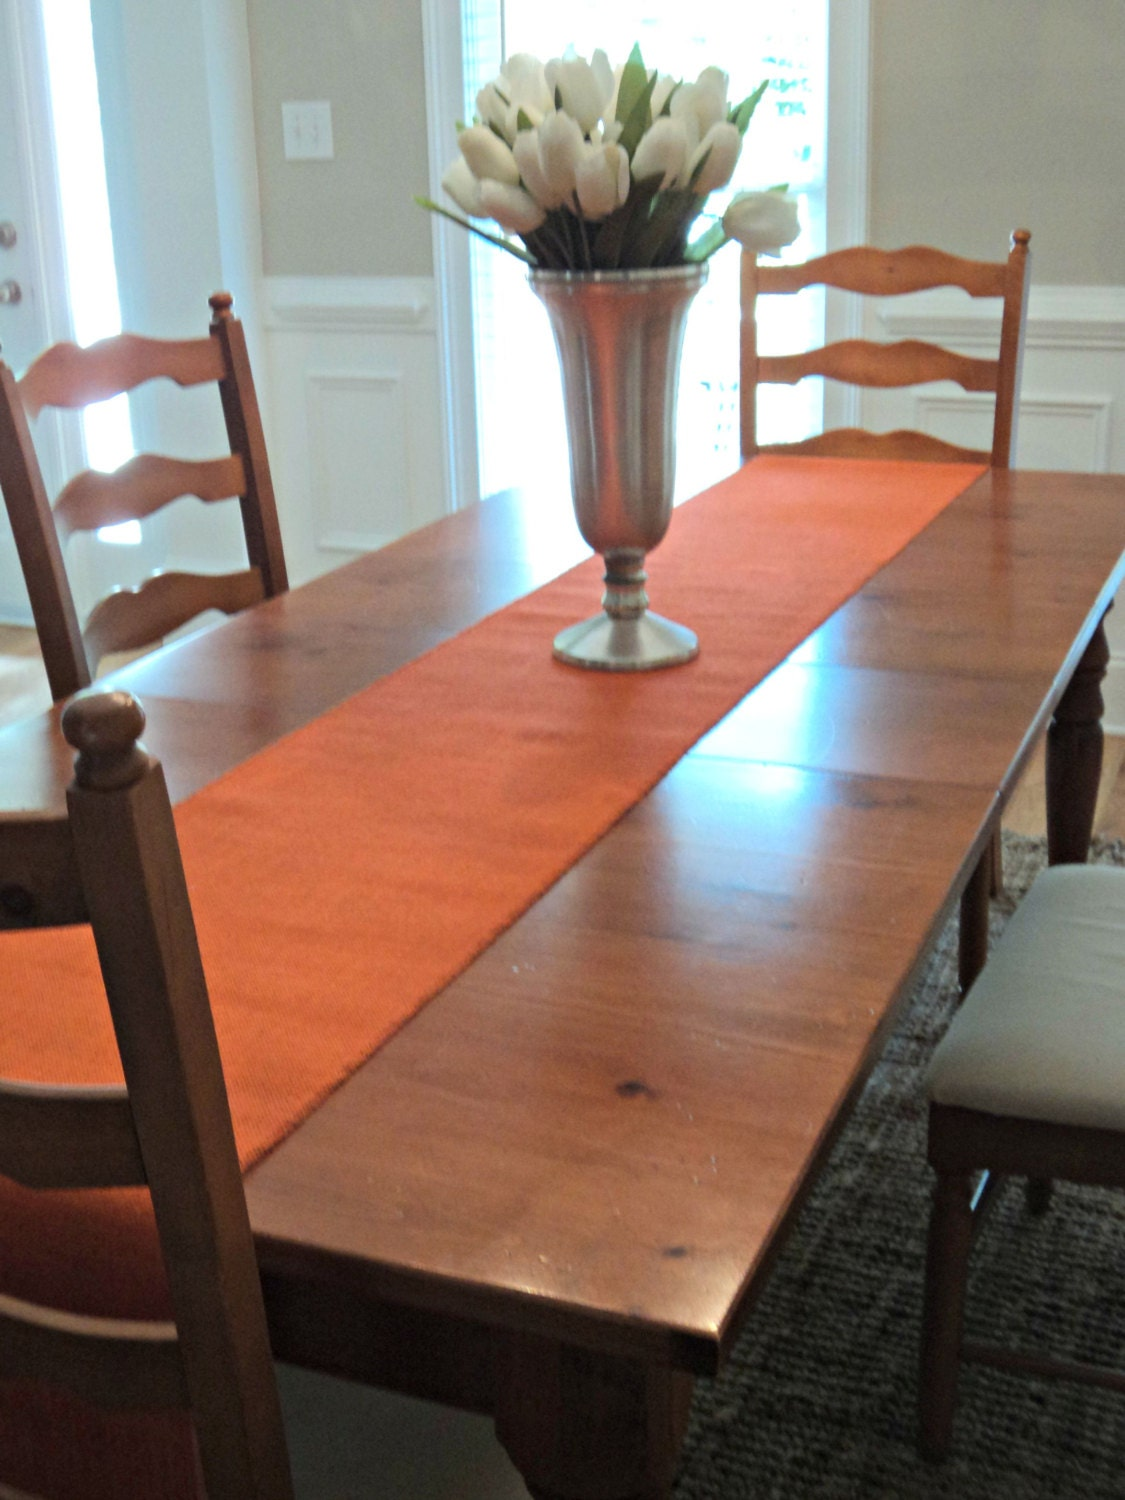 Description. Rich, Bright And Bold This Orange Burlap Table Runner ...